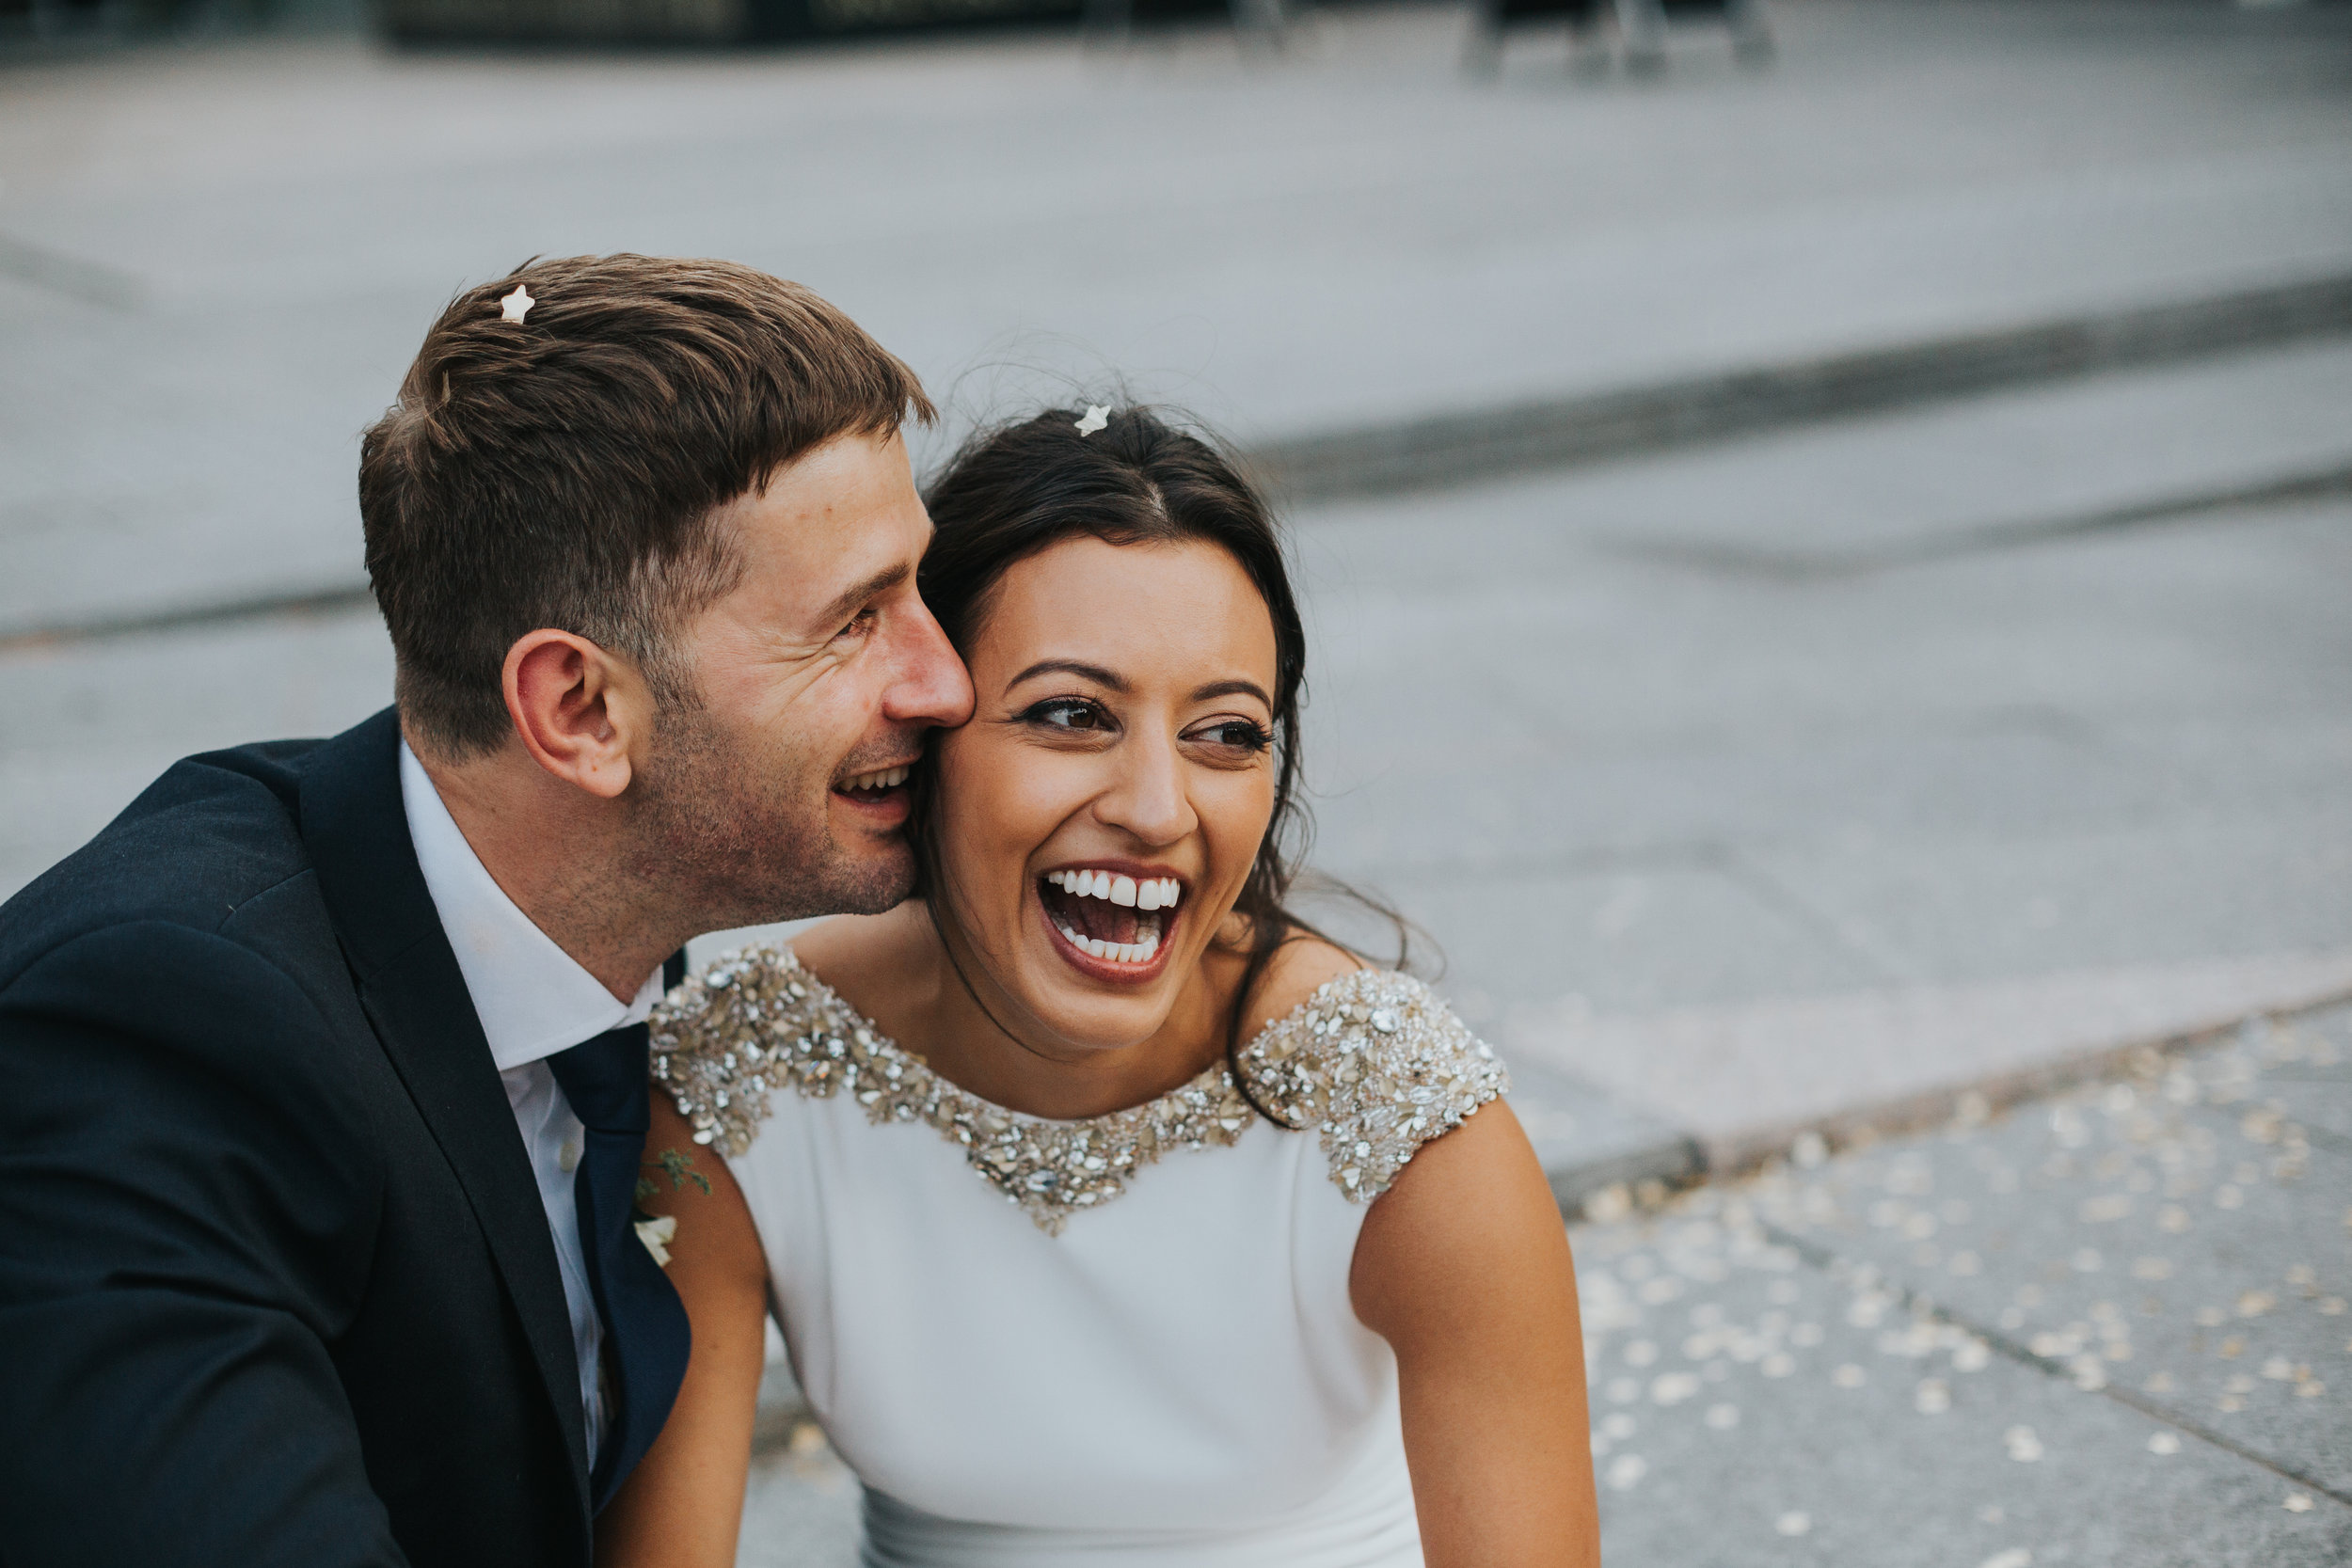 Bride and groom laughing surrounded by glittering stars.